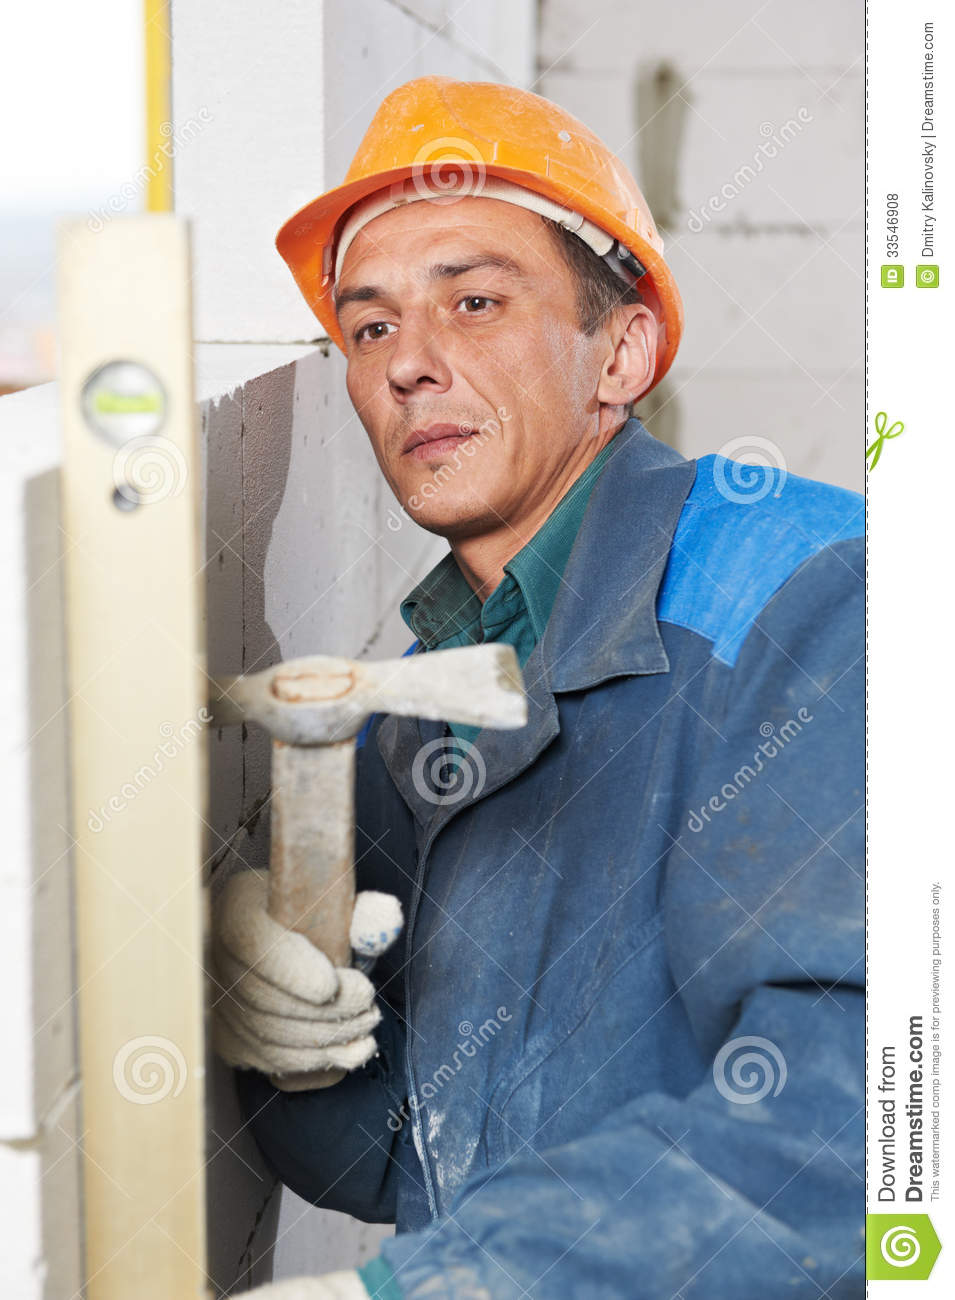 Calcium Silicate Brick Chipped : Construction mason worker bricklayer with level royalty